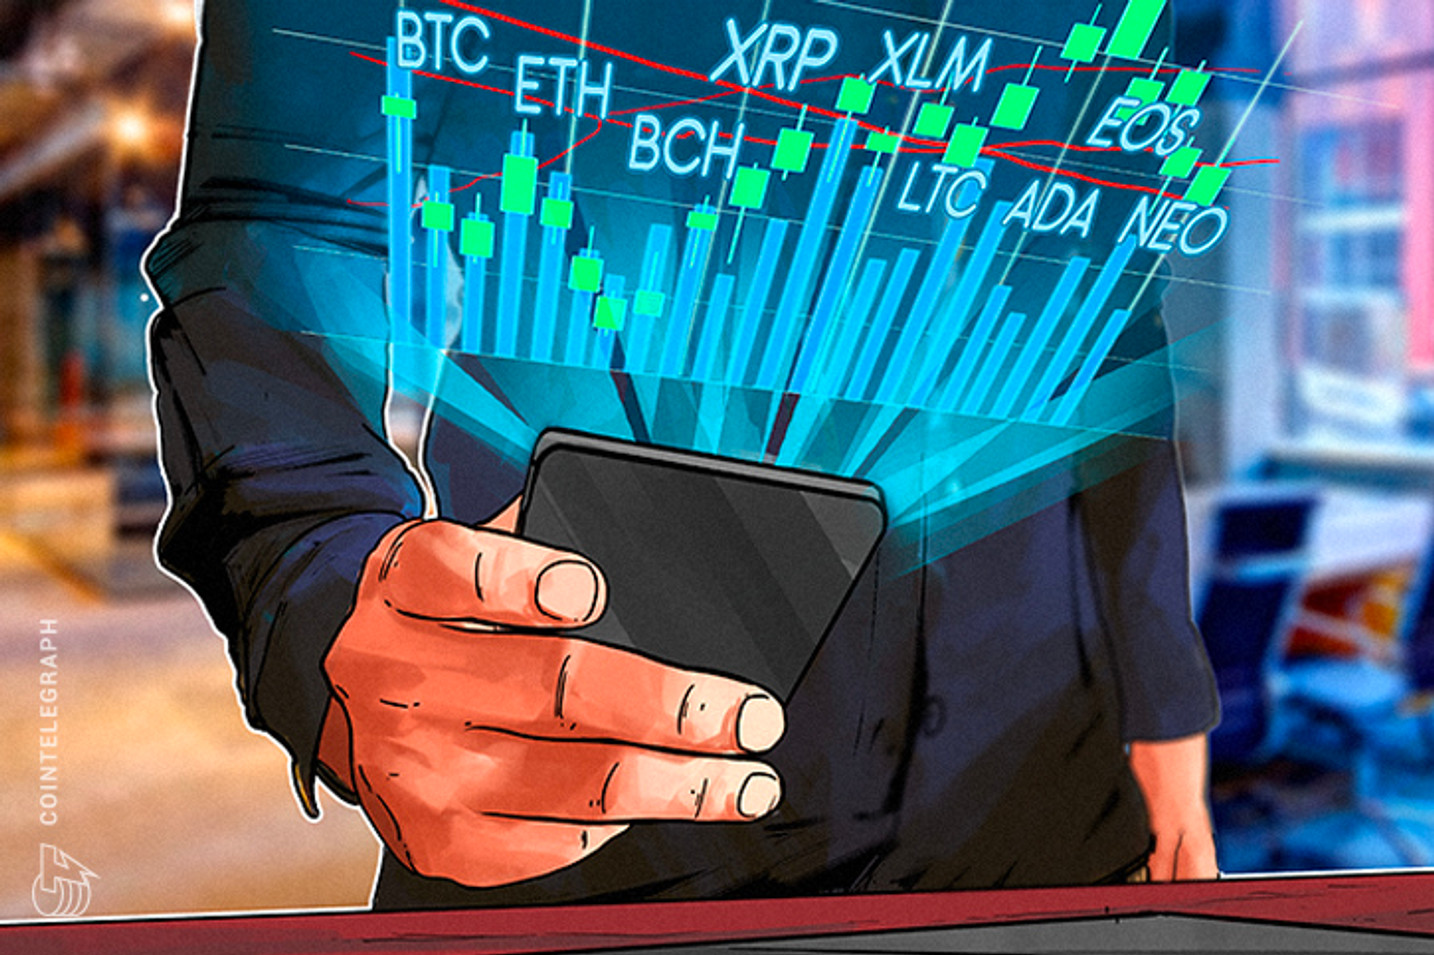 Bitcoin, Ethereum, Bitcoin Cash, Ripple, Stellar, Litecoin, Cardano, NEO, EOS: Price Analysis, March 19